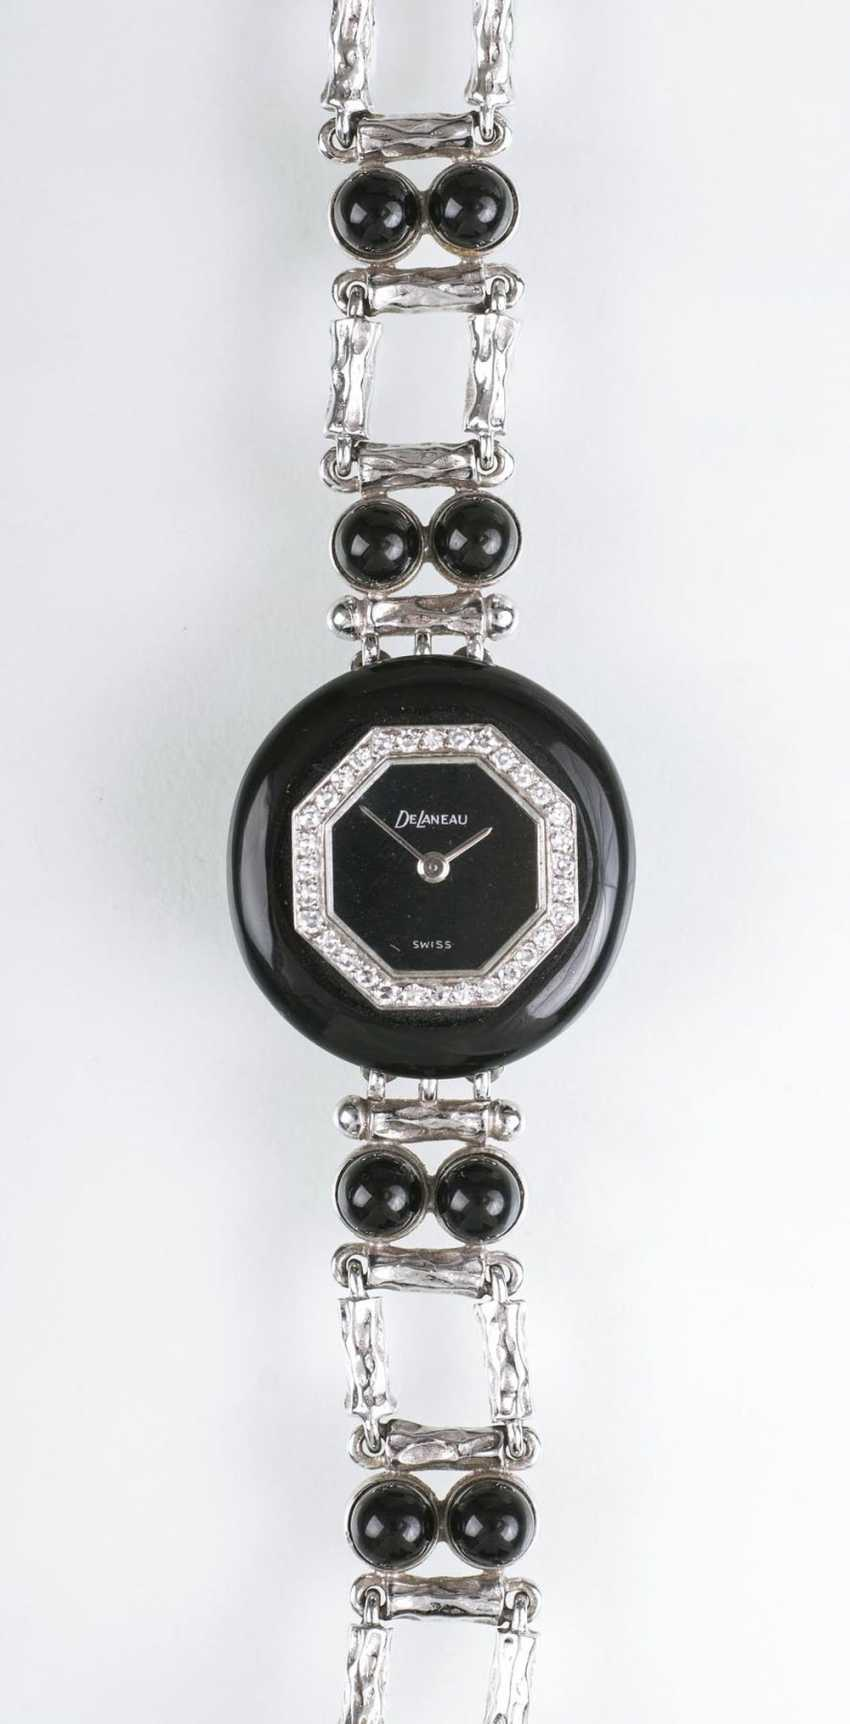 Vintage ladies wristwatch with Onyx and diamonds from the jeweller Wilm - photo 1